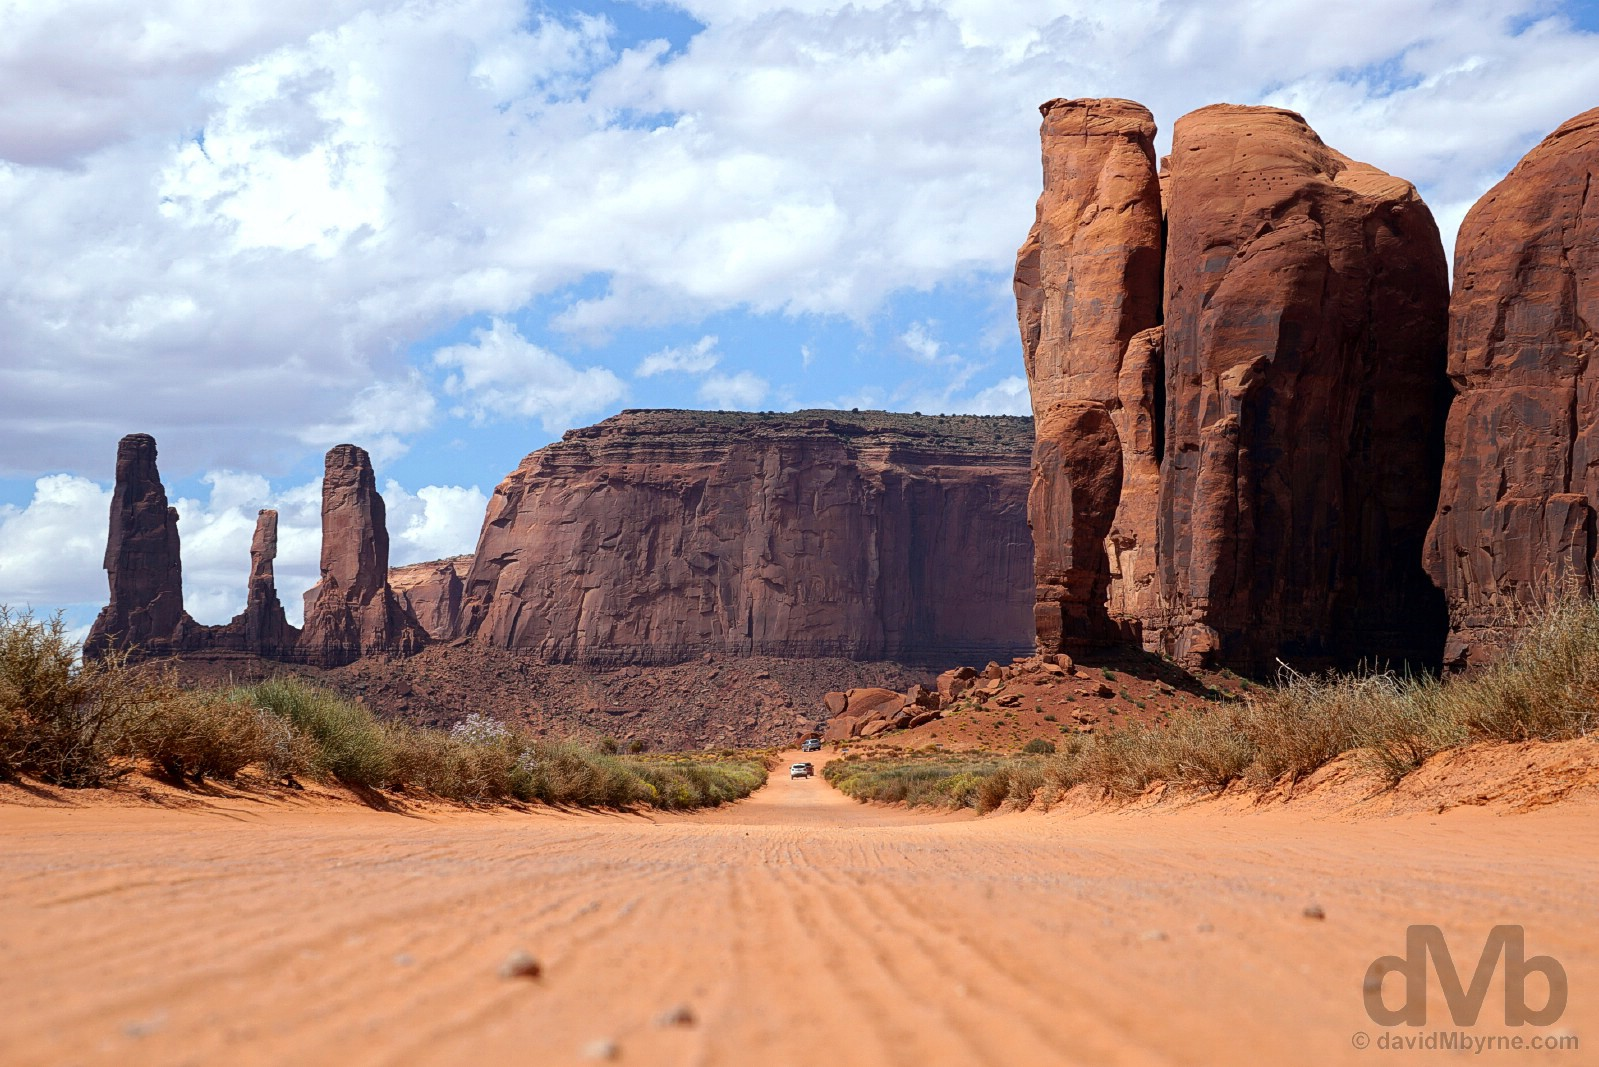 On the dusty Valley Drive in Monument Valley, Navajo Nation, southern Utah, USA. September 11, 2016.